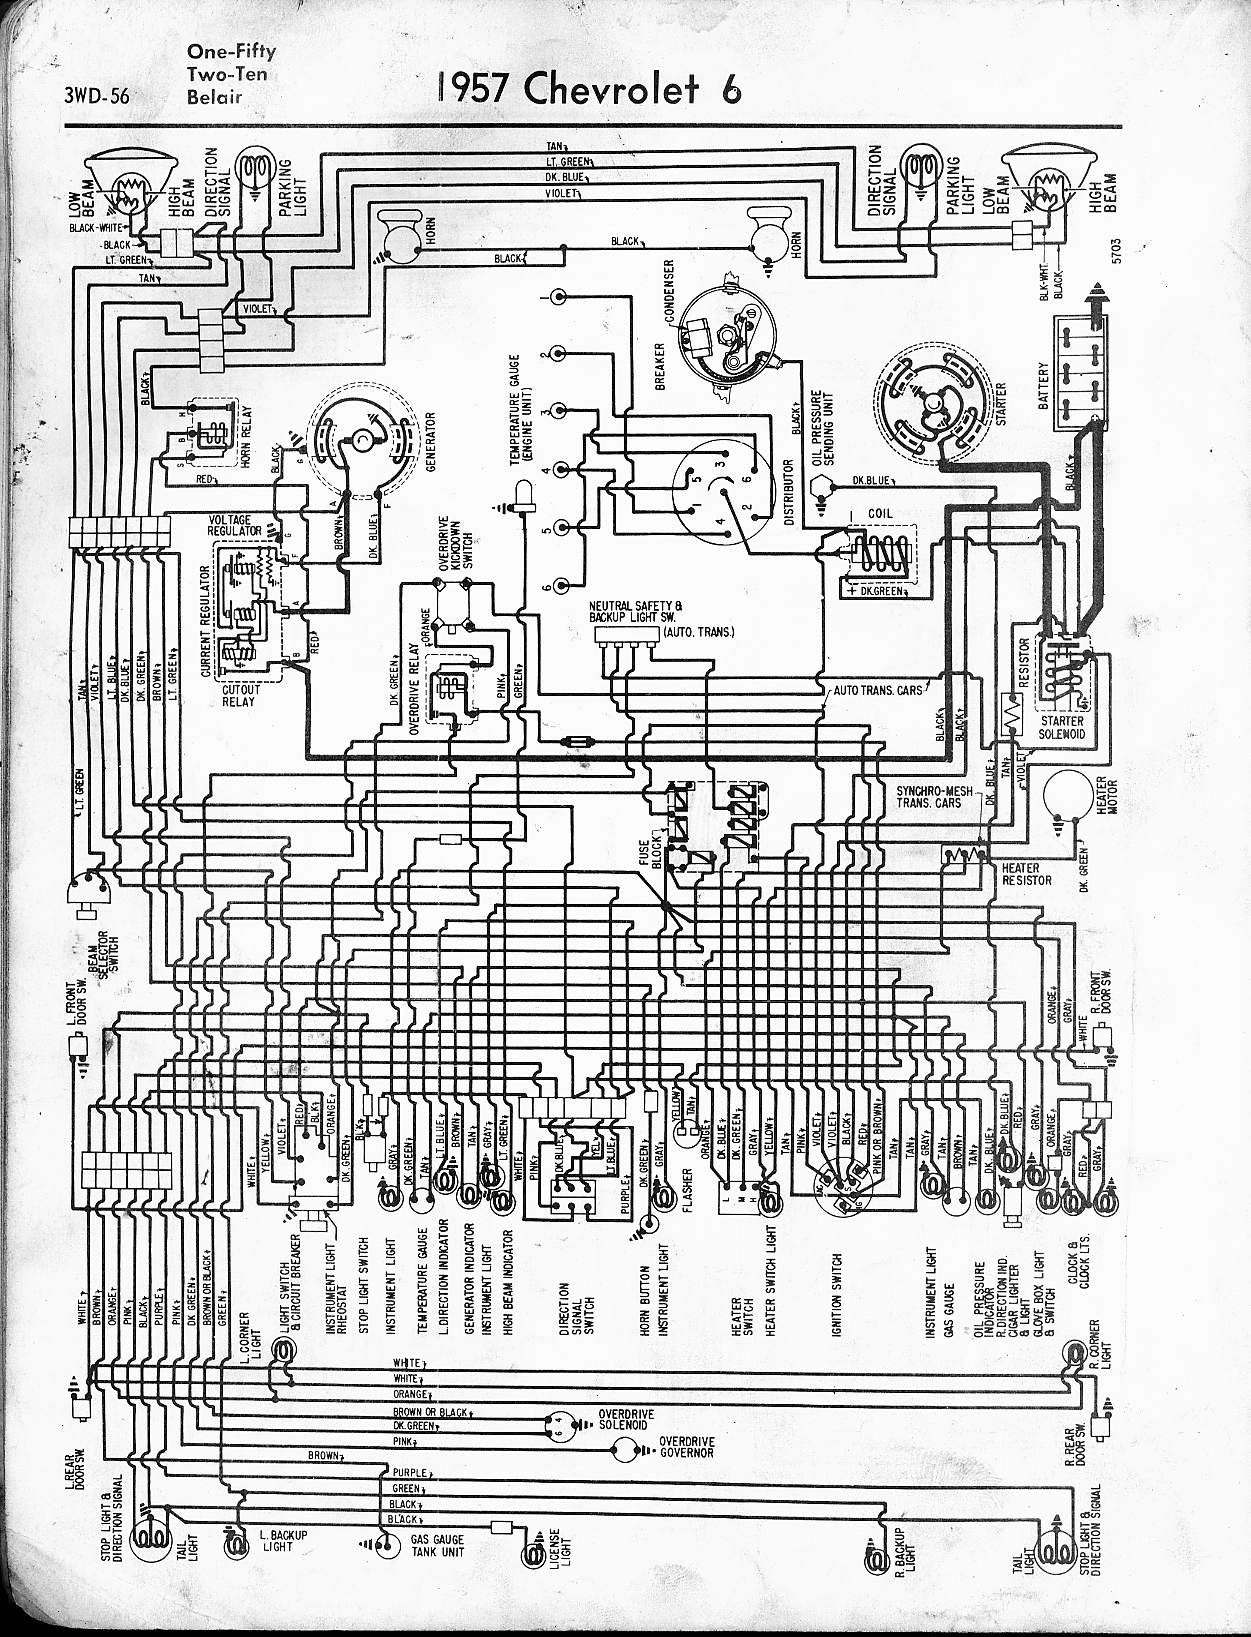 hight resolution of 1962 chevy pickup wiring diagram wiring diagram centre 1957 chevy pickup wiring harness 1962 chevy 2